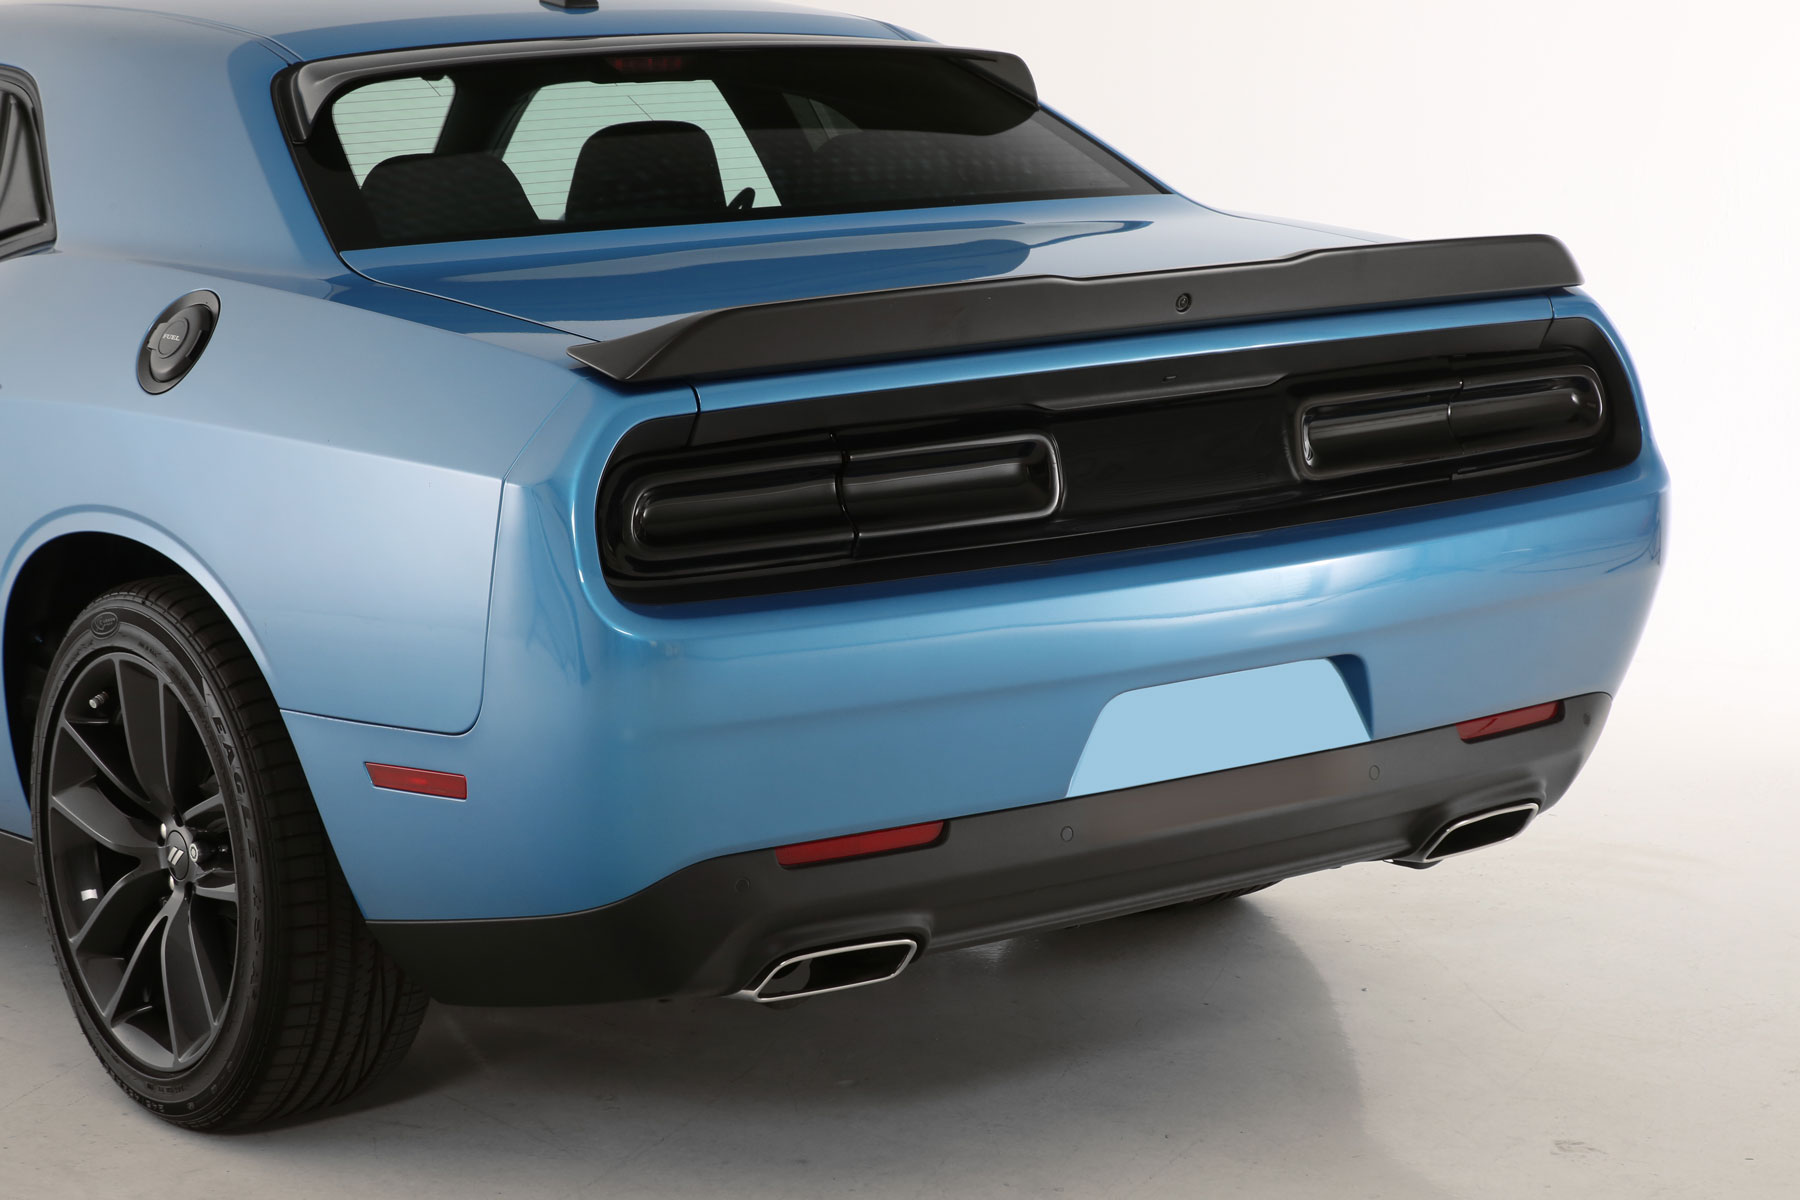 2015 2020 Dodge Challenger All Rear Black Out Kit 3 Pc Smoke Mounts With 3m Dual Lock Gt Styling